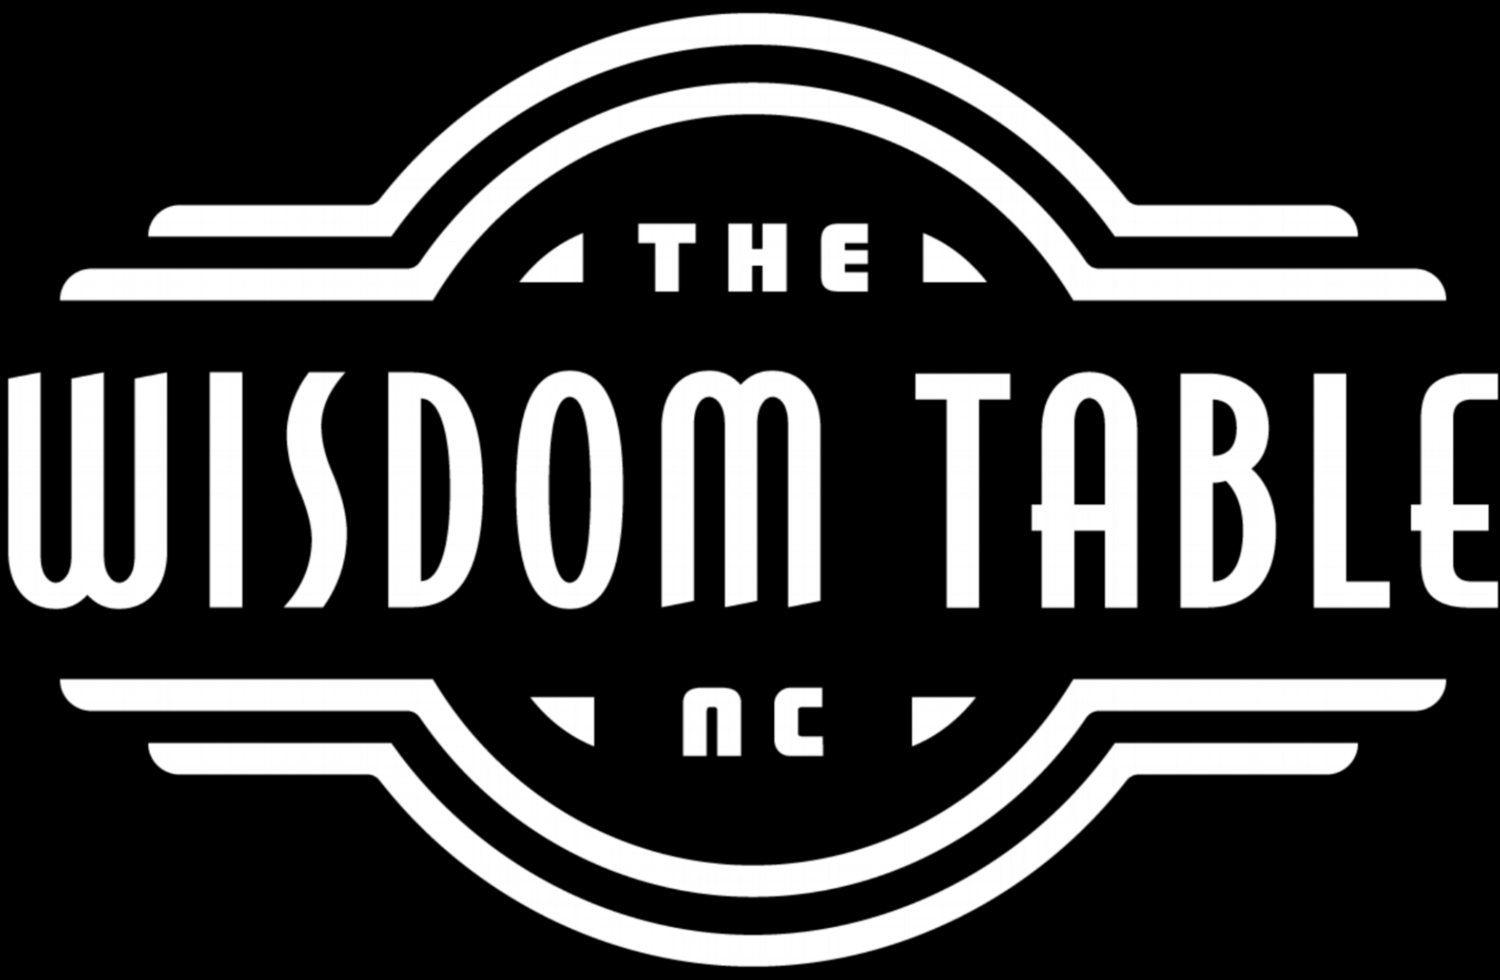 The Wisdom Table